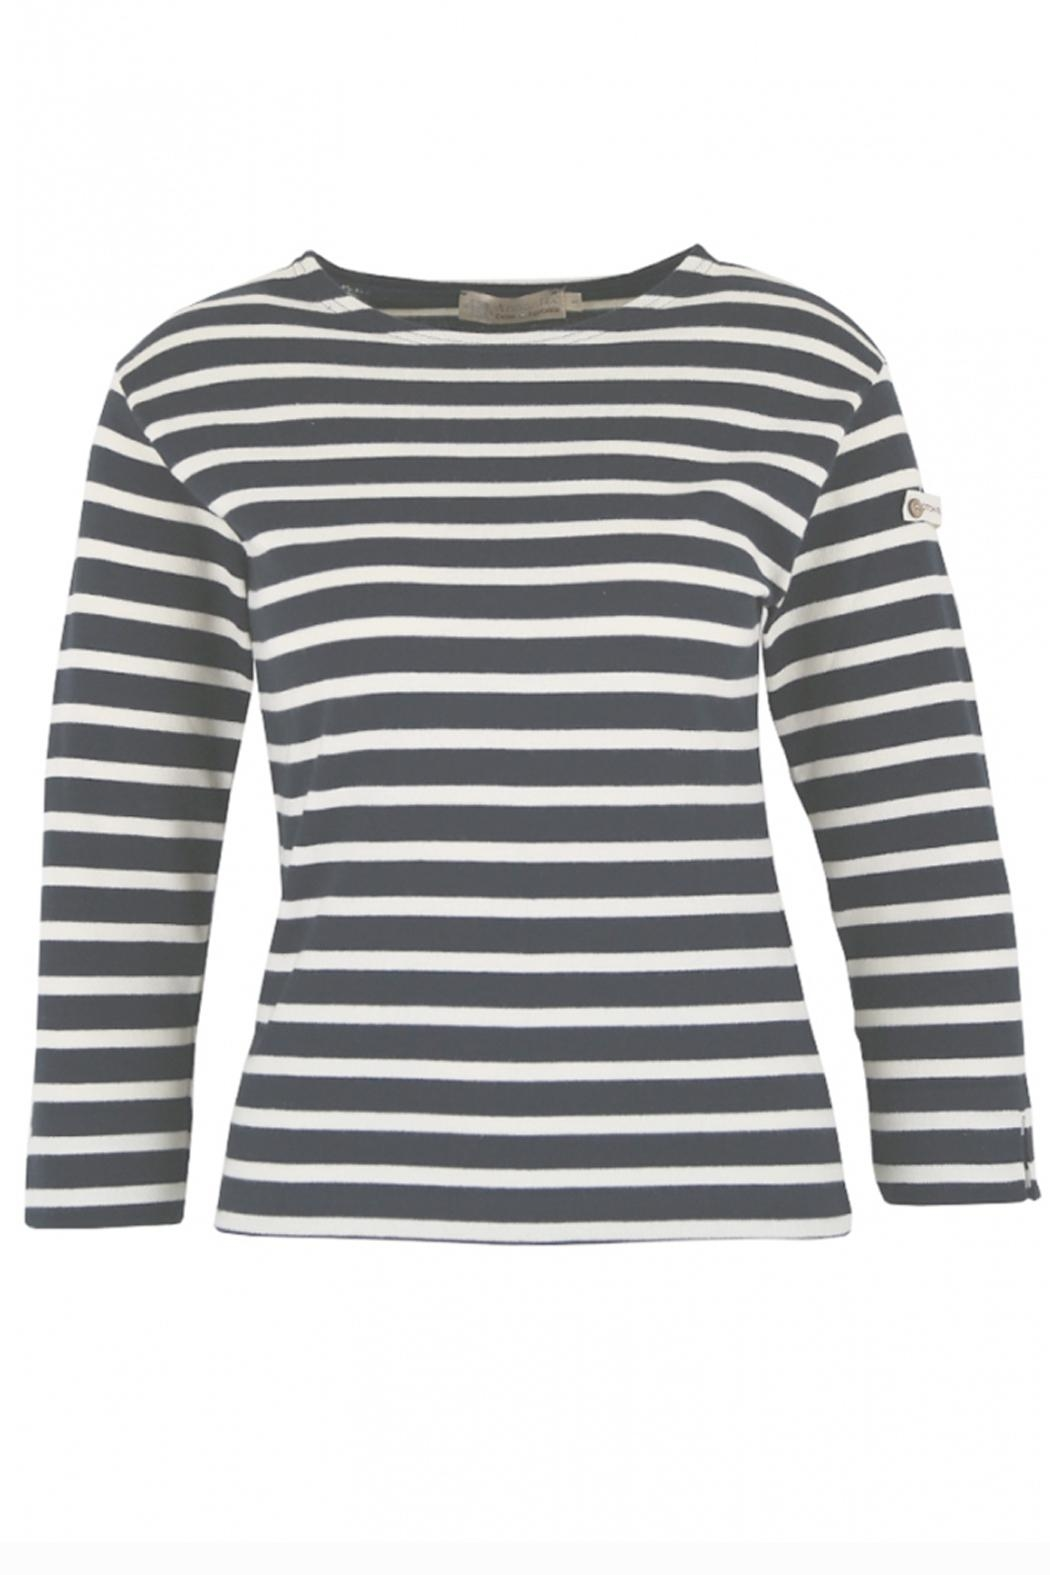 Armor Lux Navy & White Breton Shirt - Front Cropped Image